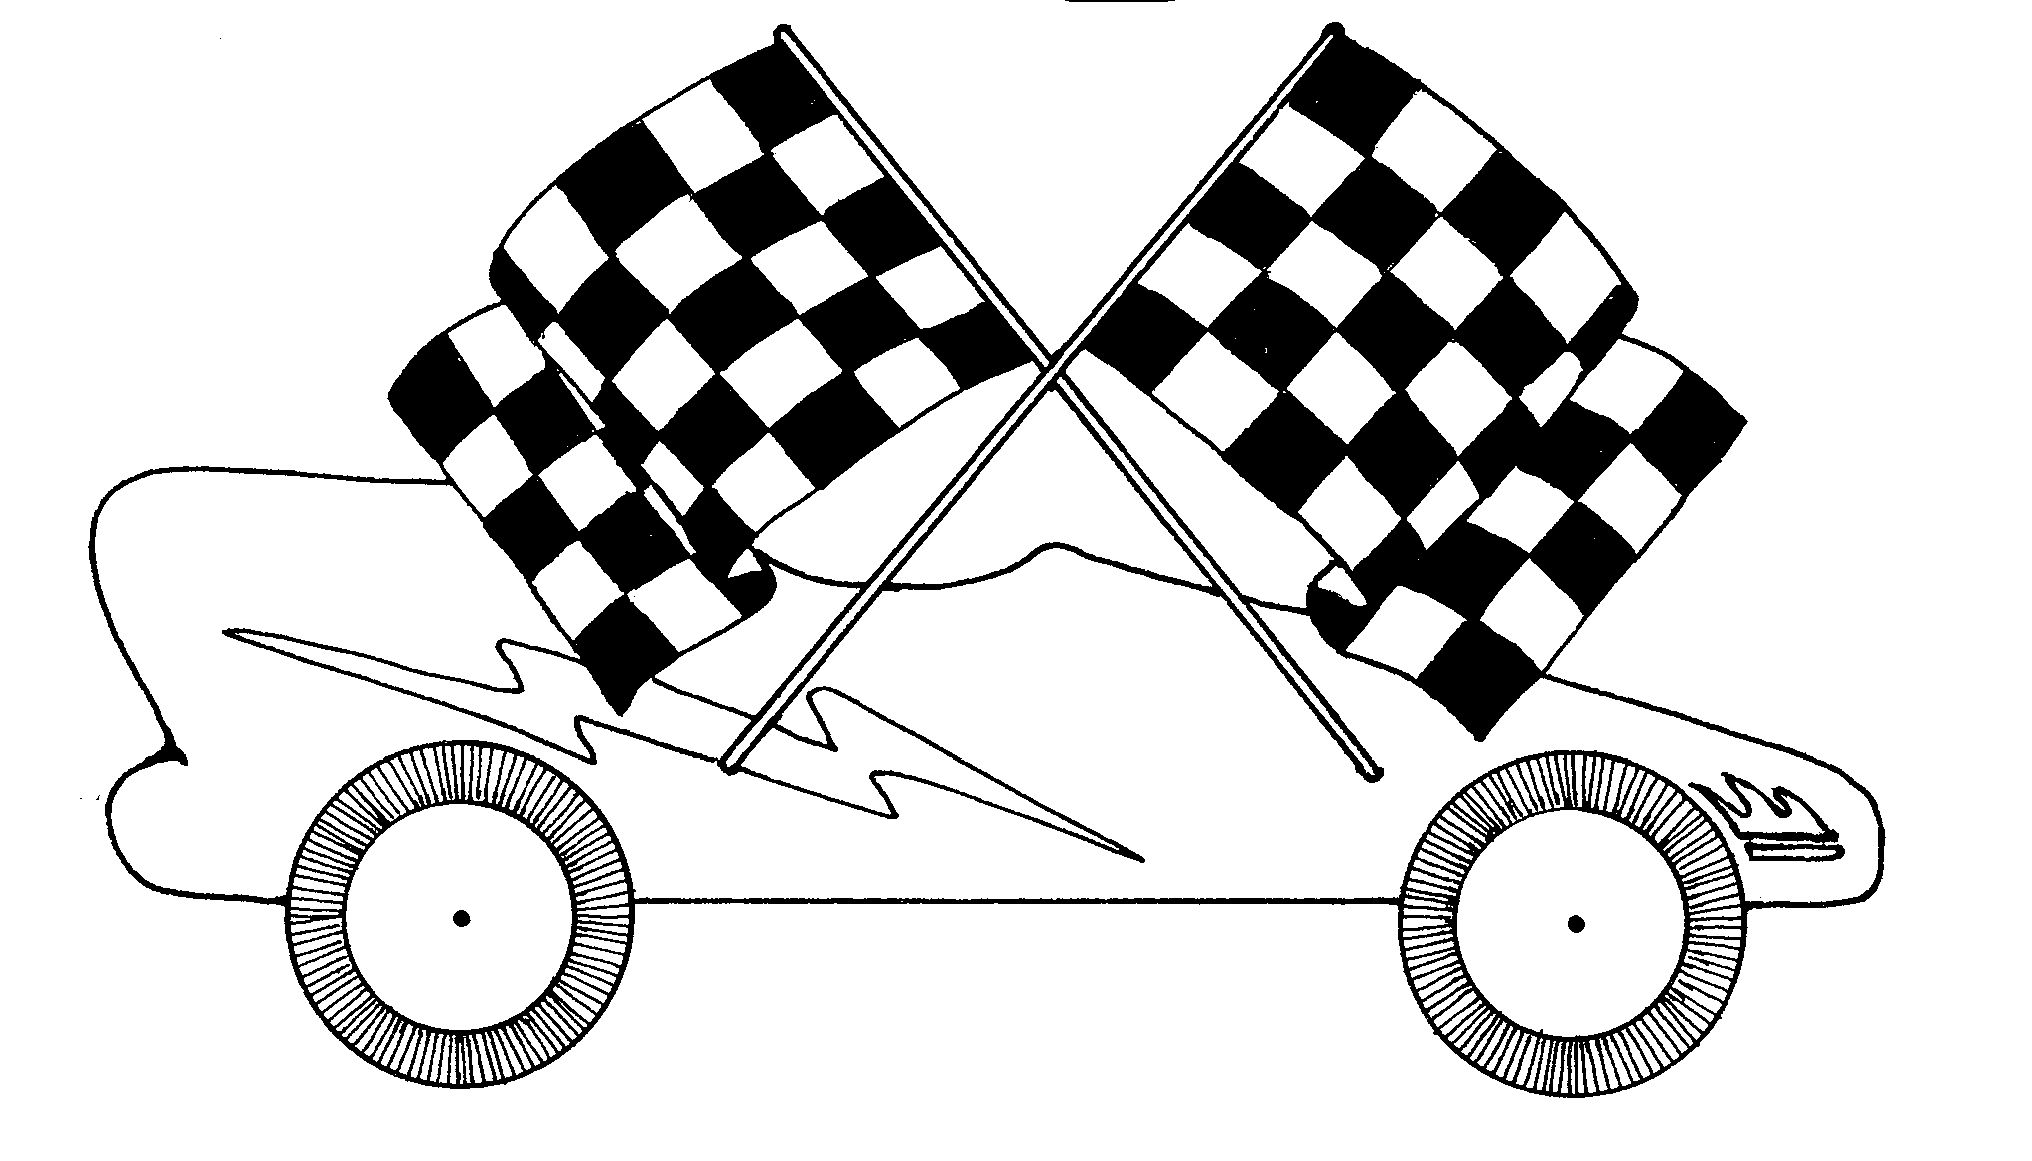 pinewood derby clipart cub scouts pinterest pinewood derby rh pinterest com Cub Scouts Pinewood Derby Printables pinewood derby clip art free